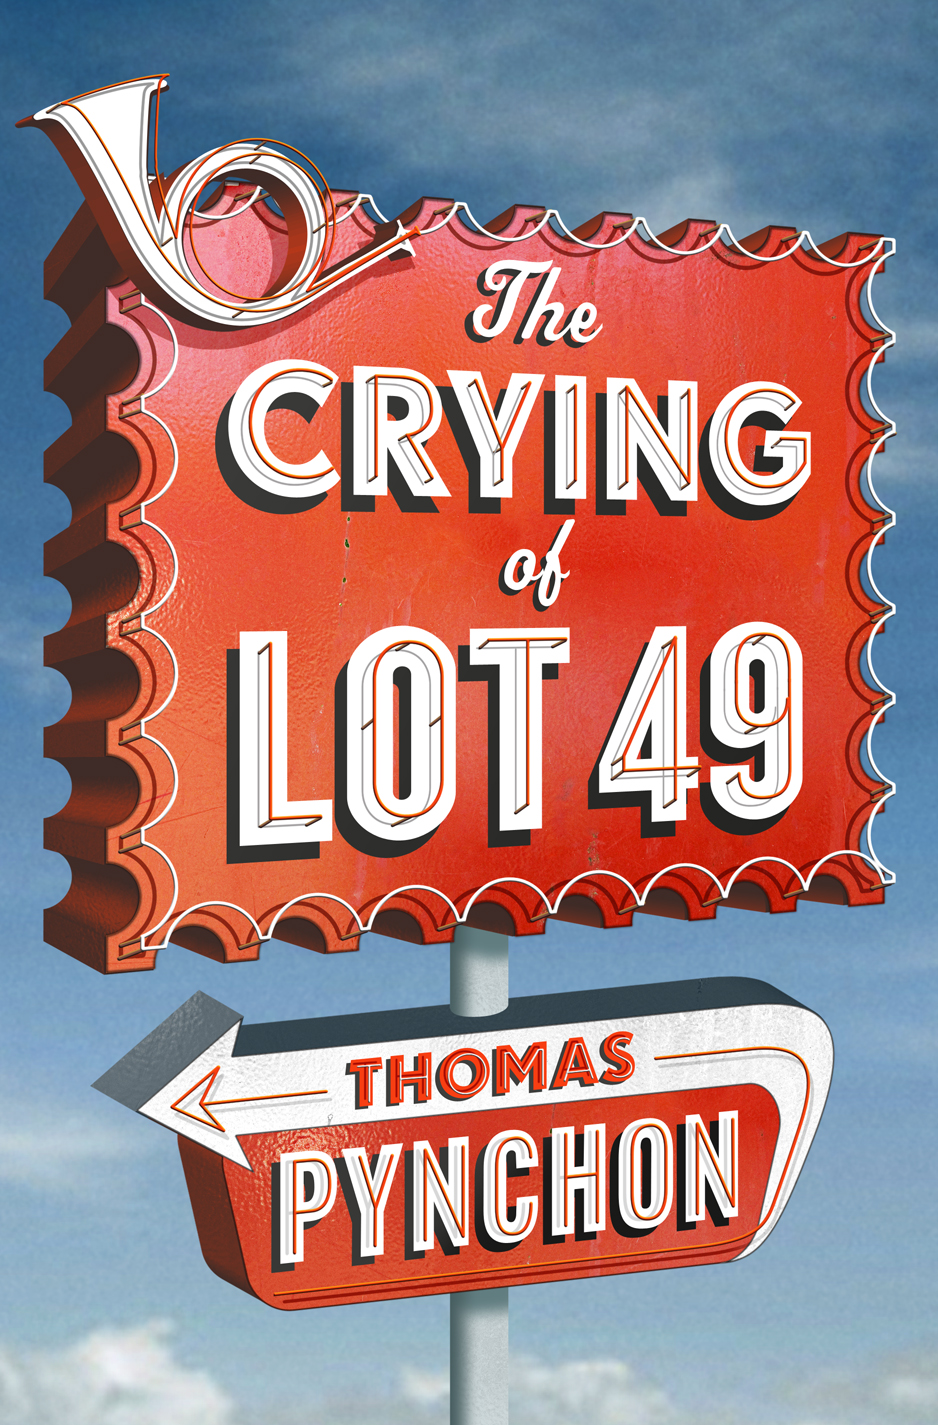 the crying of lot 49 Some consider the crying of lot 49 pynchon's most accessible novel but pynchon himself said of it, in his introduction to the slow learner collection: [it] was marketed as a 'novel,'.